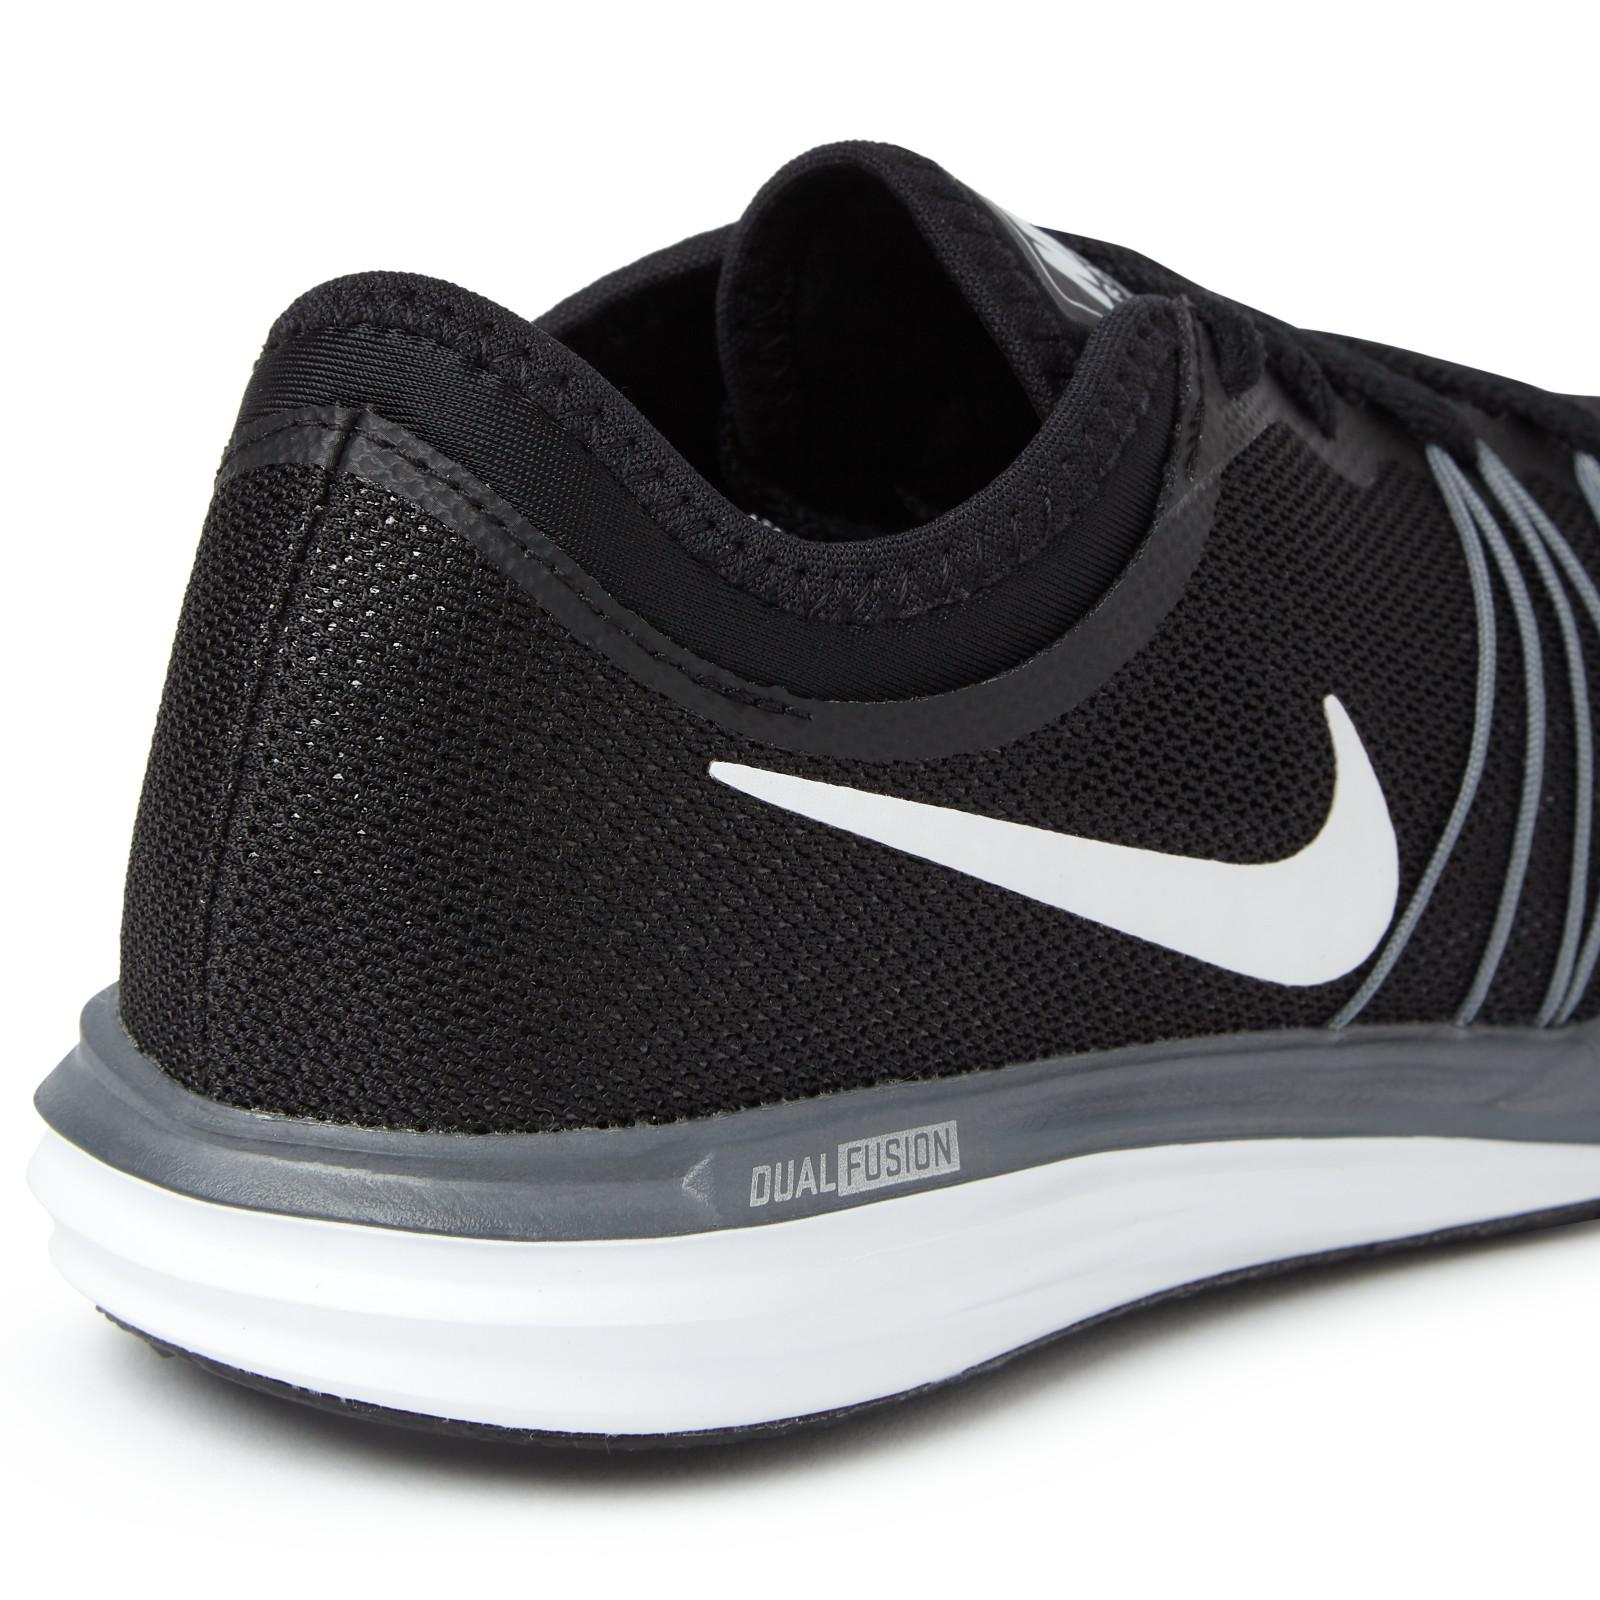 6a2754bd8e05 Nike Dual Fusion Tr Hit Women s Cross Trainers in Black - Lyst